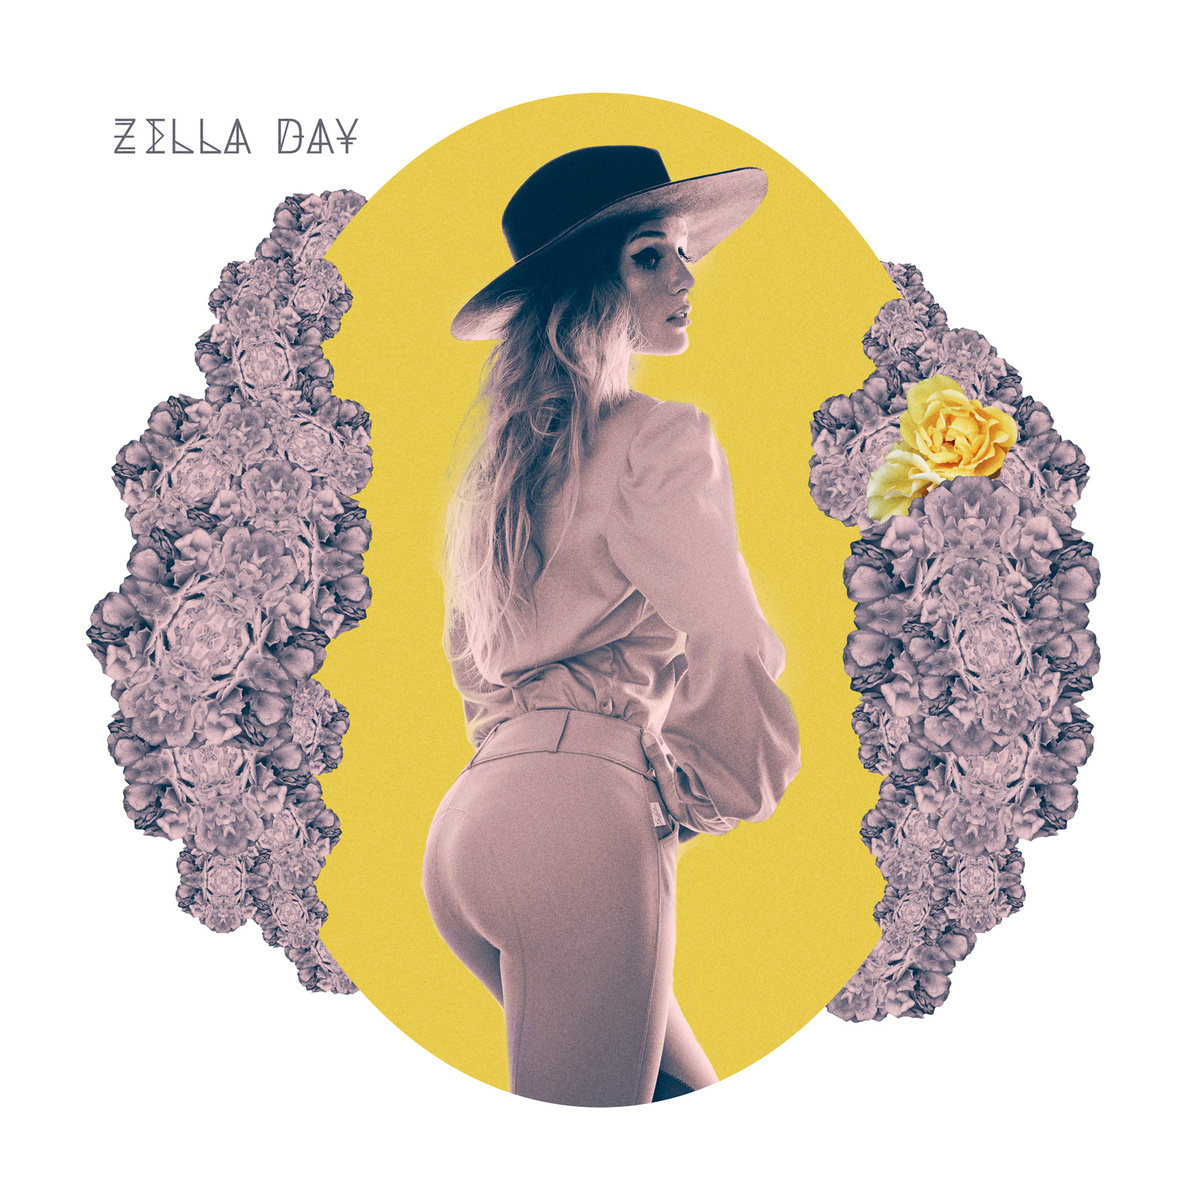 Zella Day's self-titled EP.